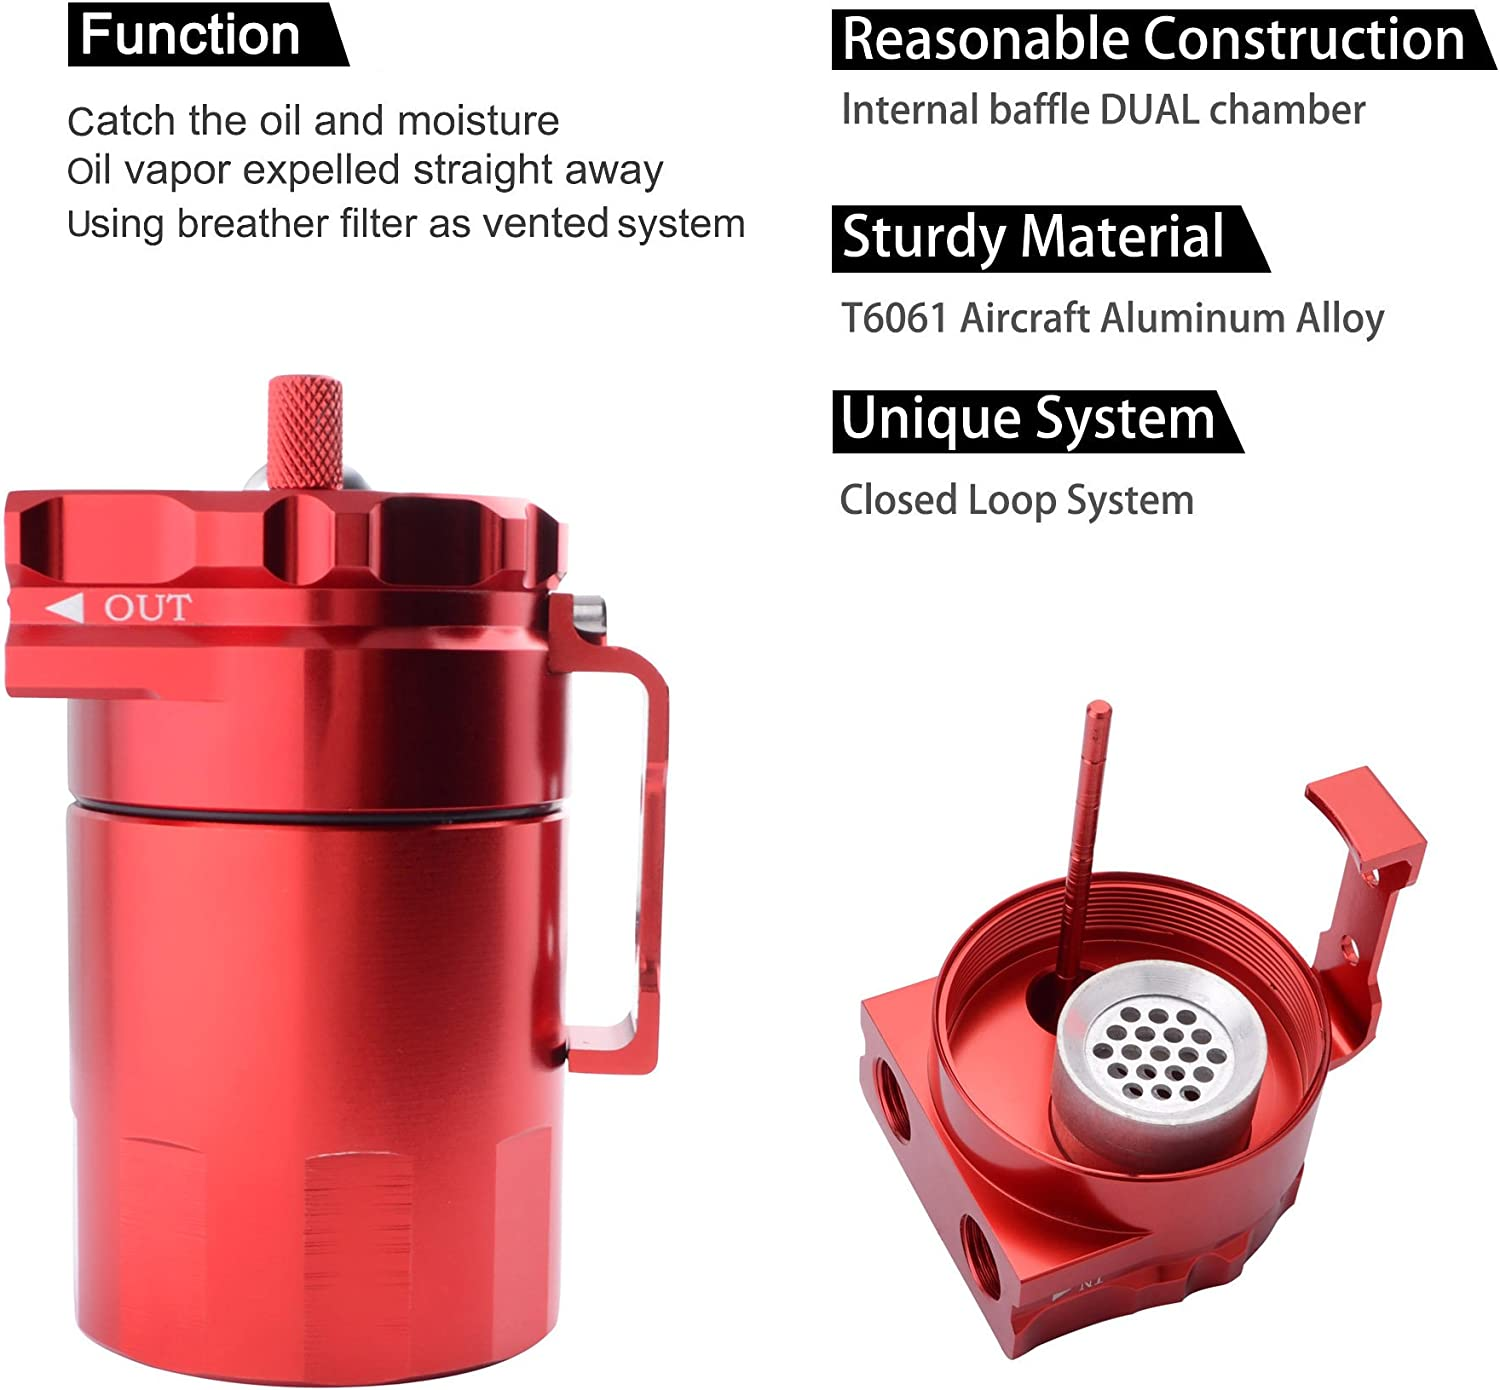 2-Port Oil Catch Can Tank With Breather Polish Baffled Reservoir Black Red